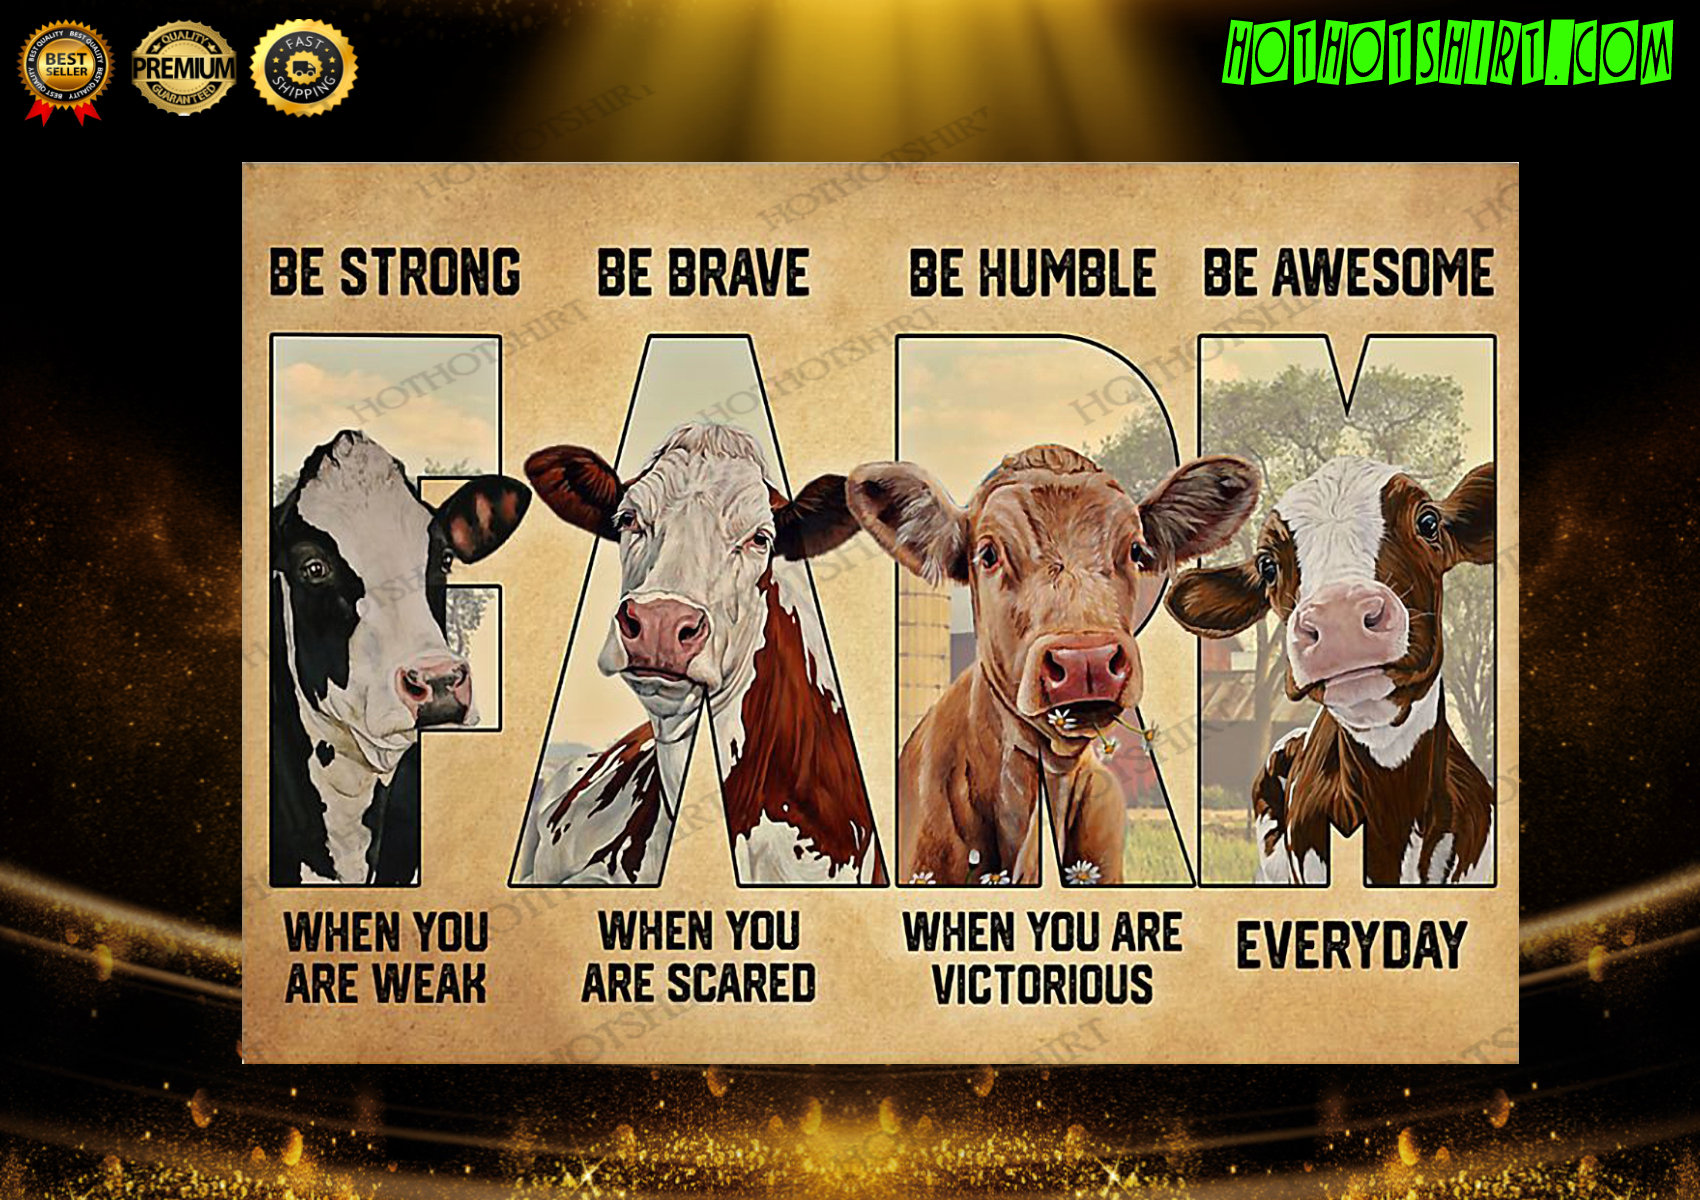 Cow farm be awesome everyday poster